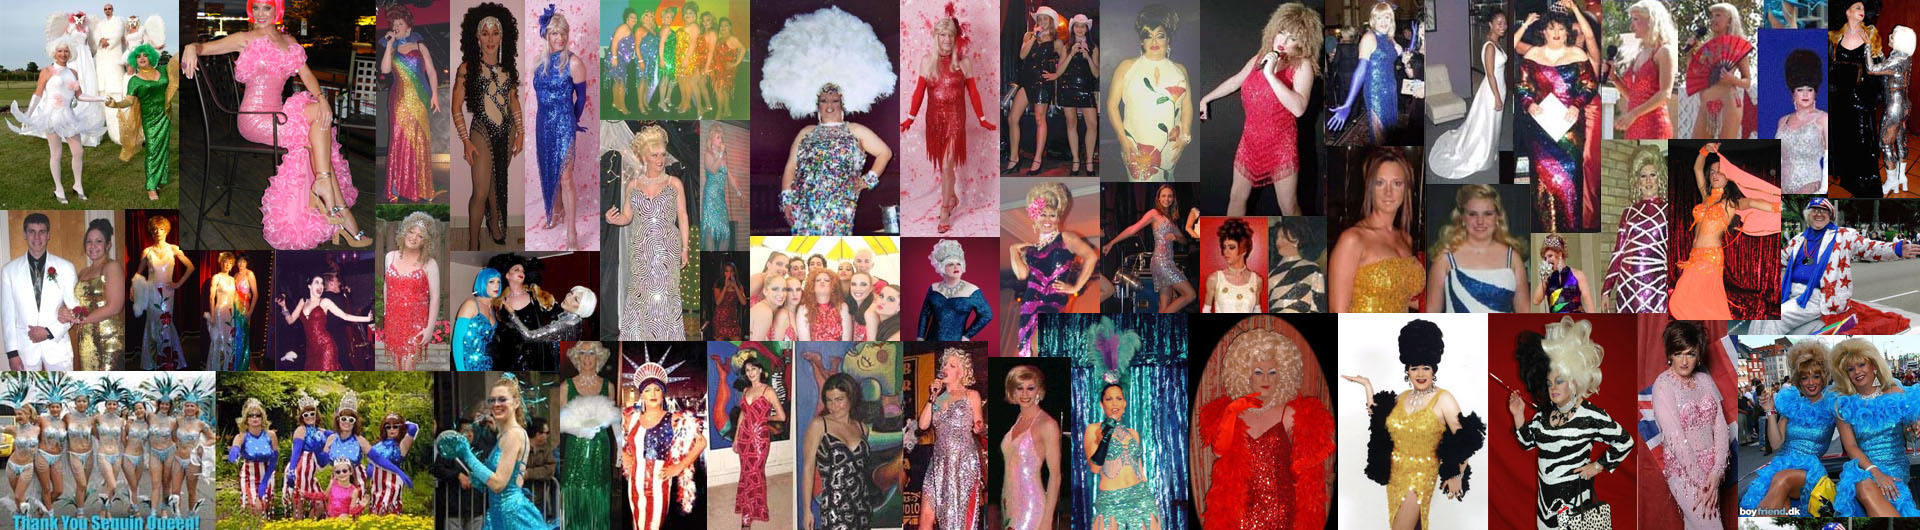 Dragqueens and Transvestites wearing gowns and dresses made by SequinQueen